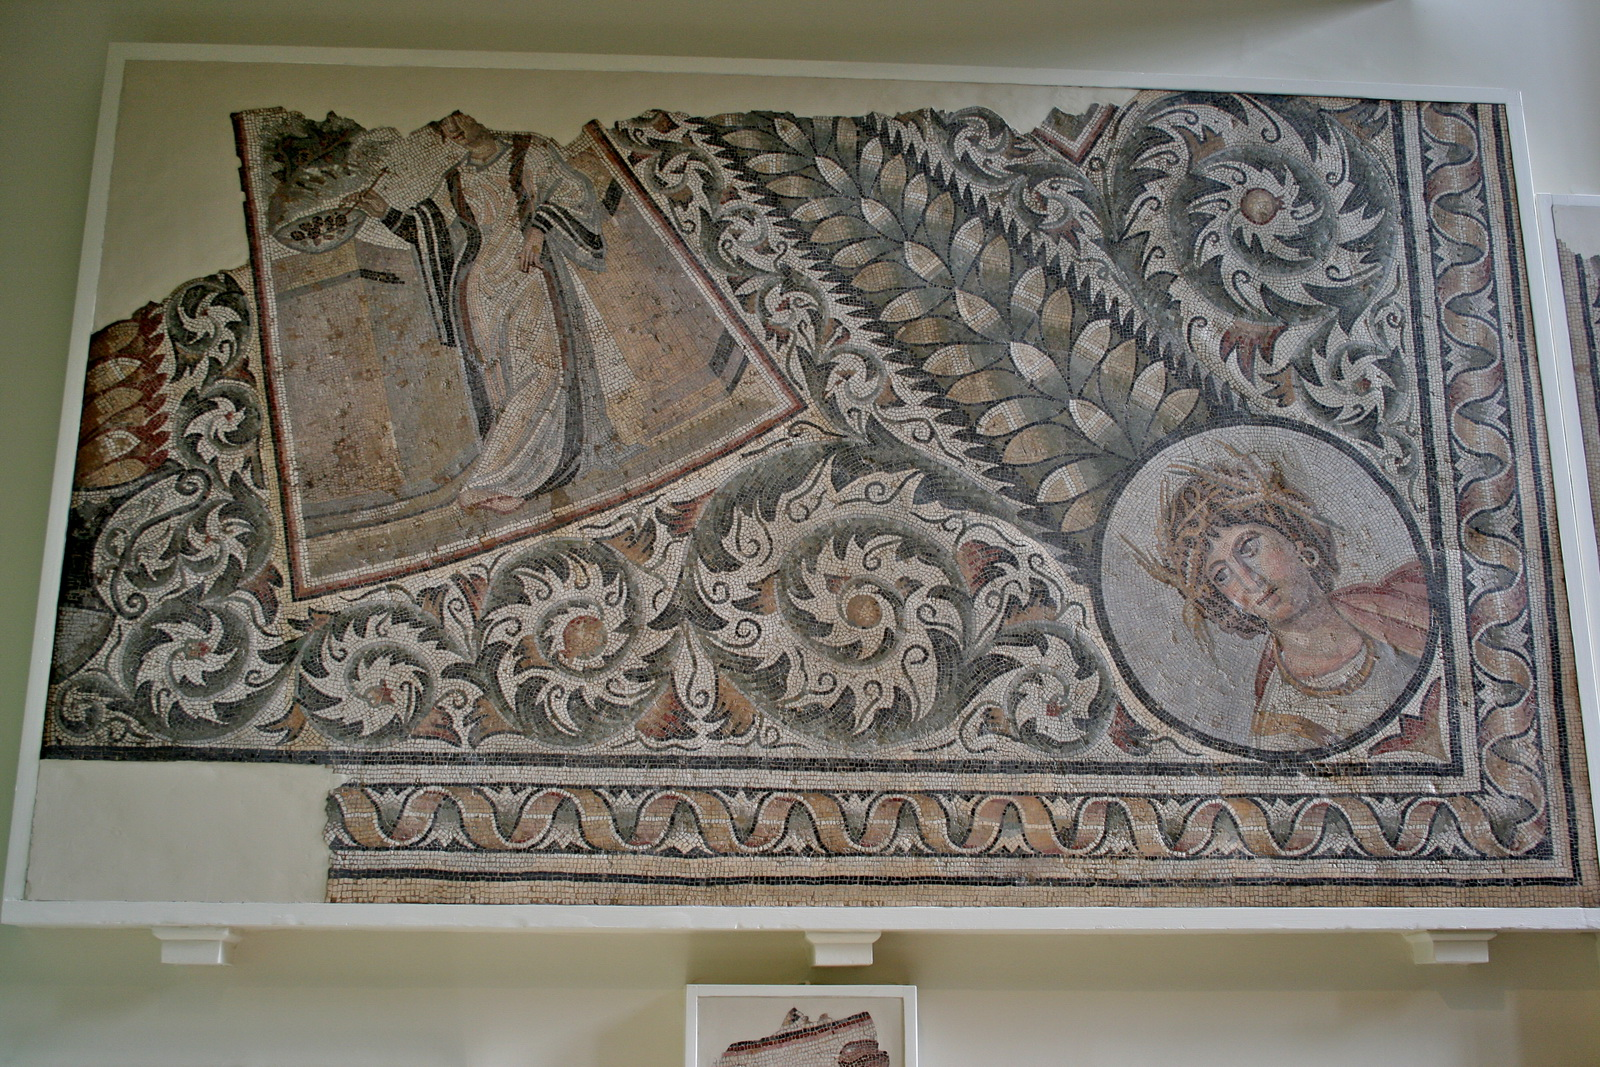 British Museum, London, England, North African mosaic